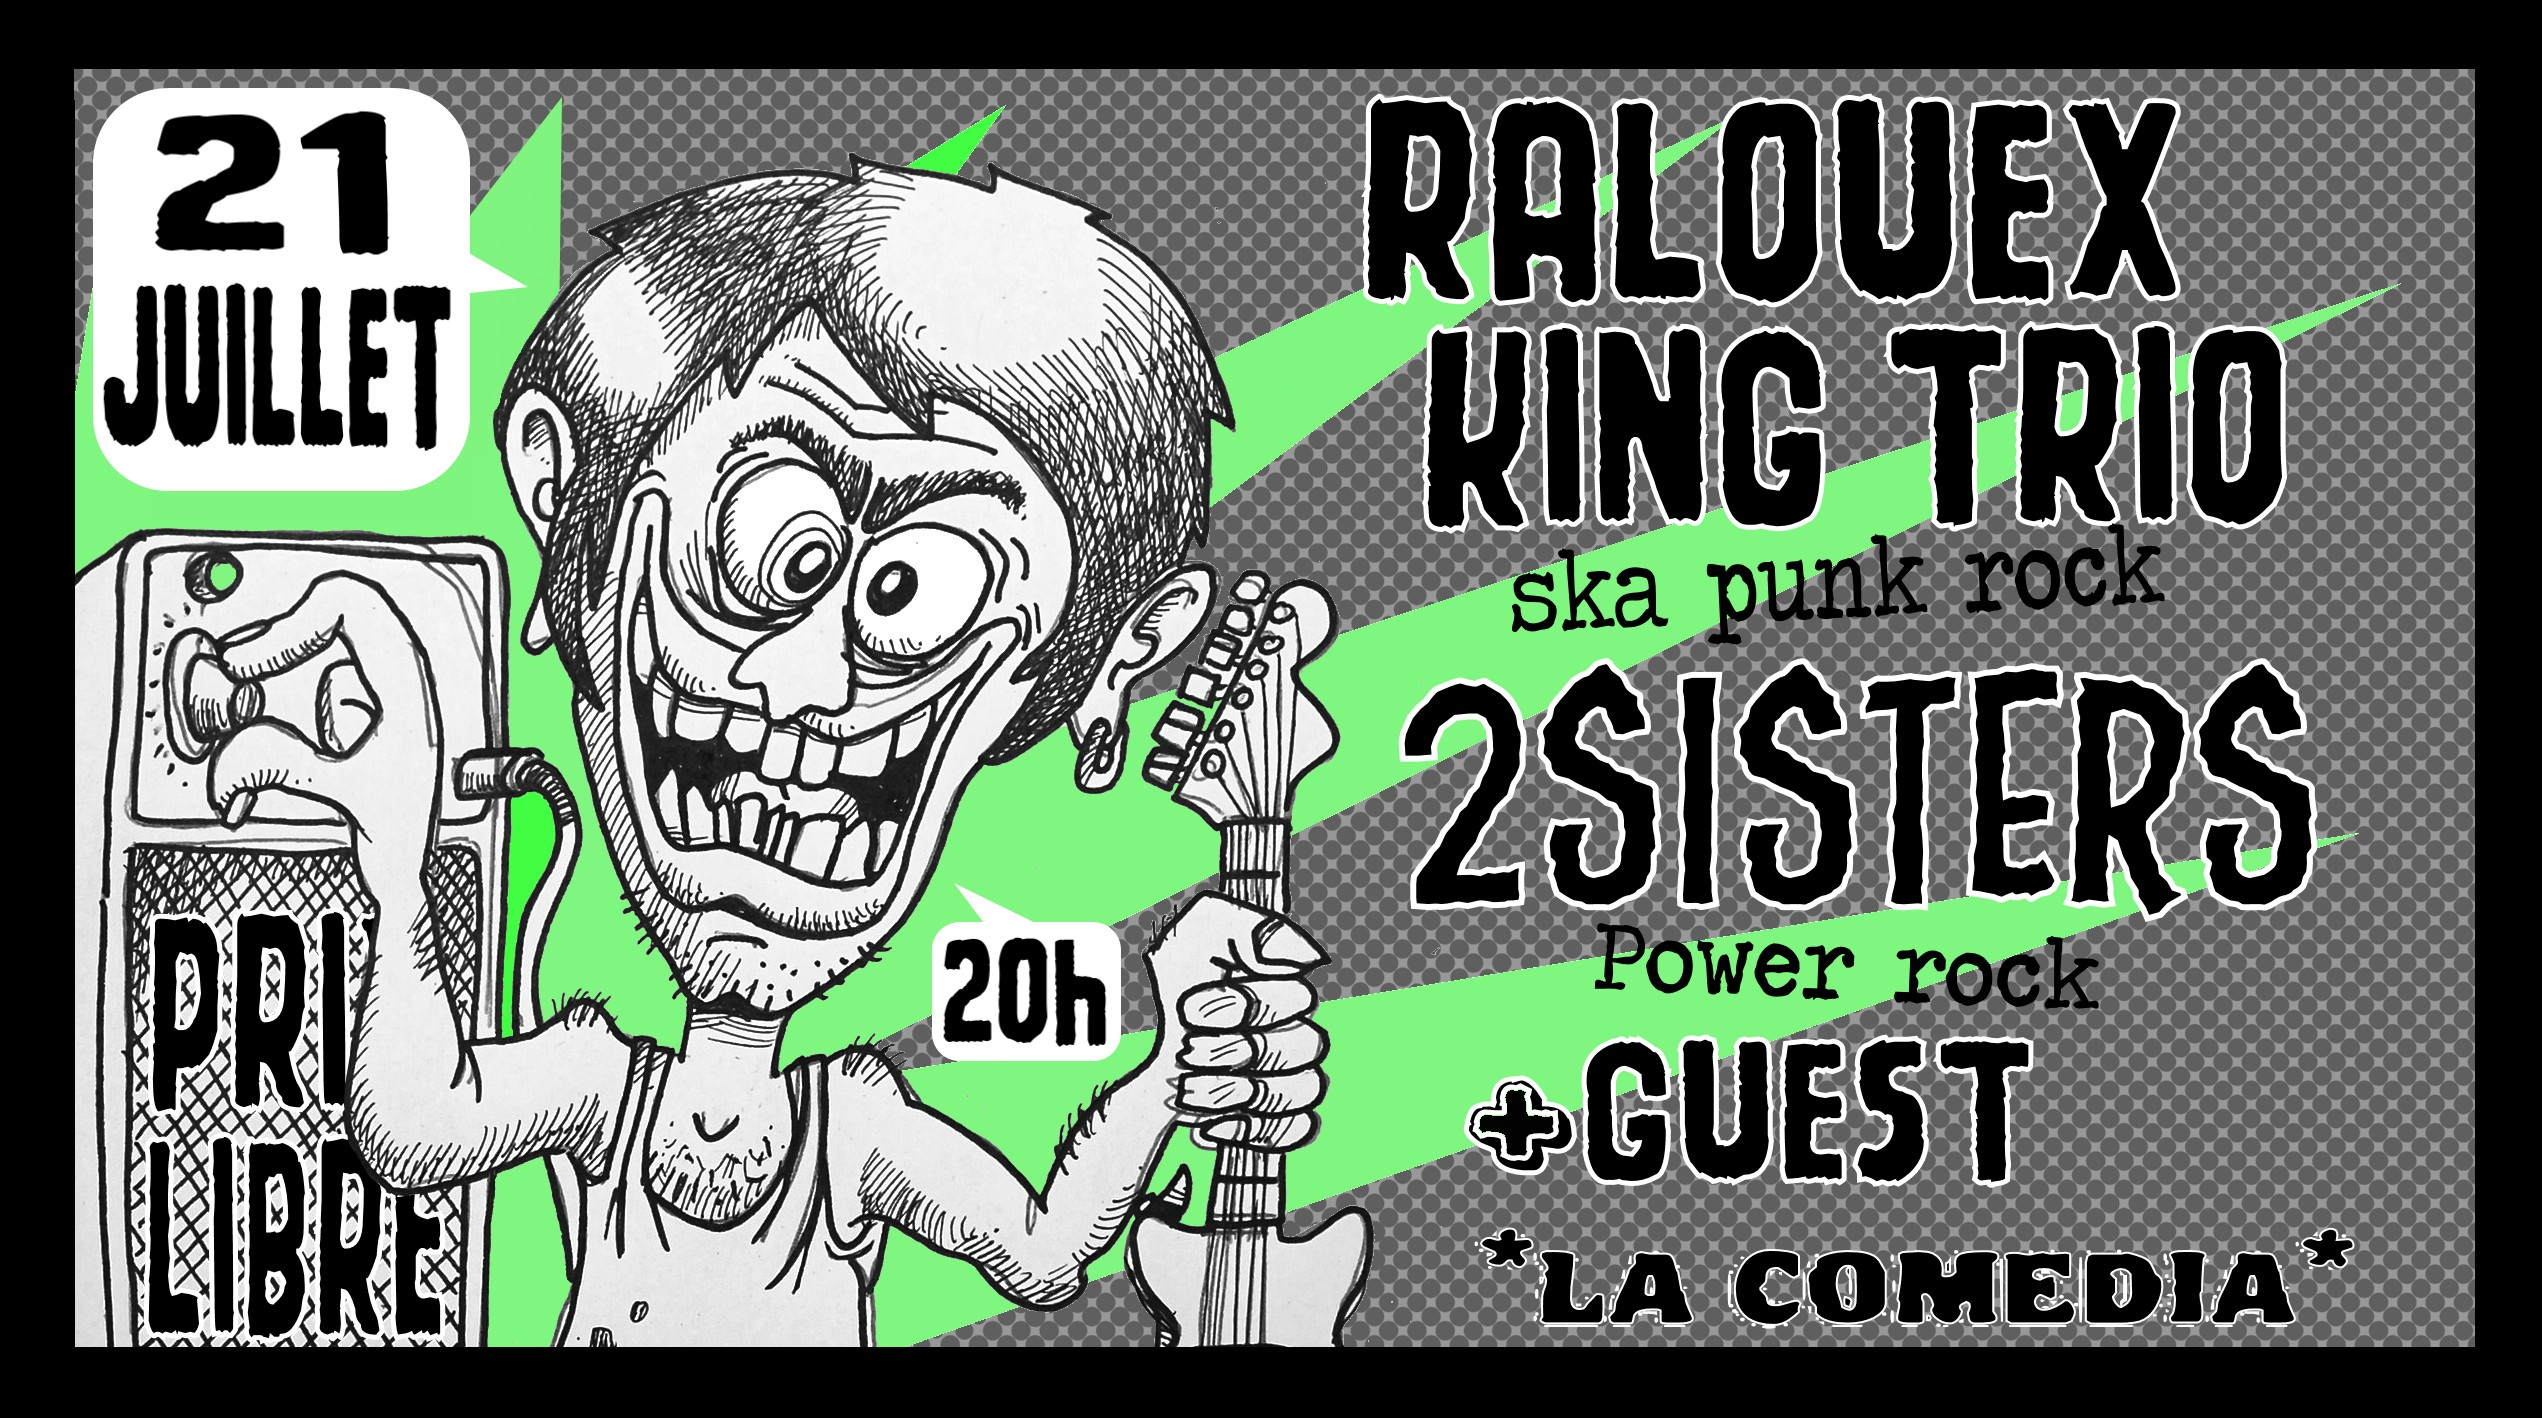 2sisters, raoulex king trio, guest